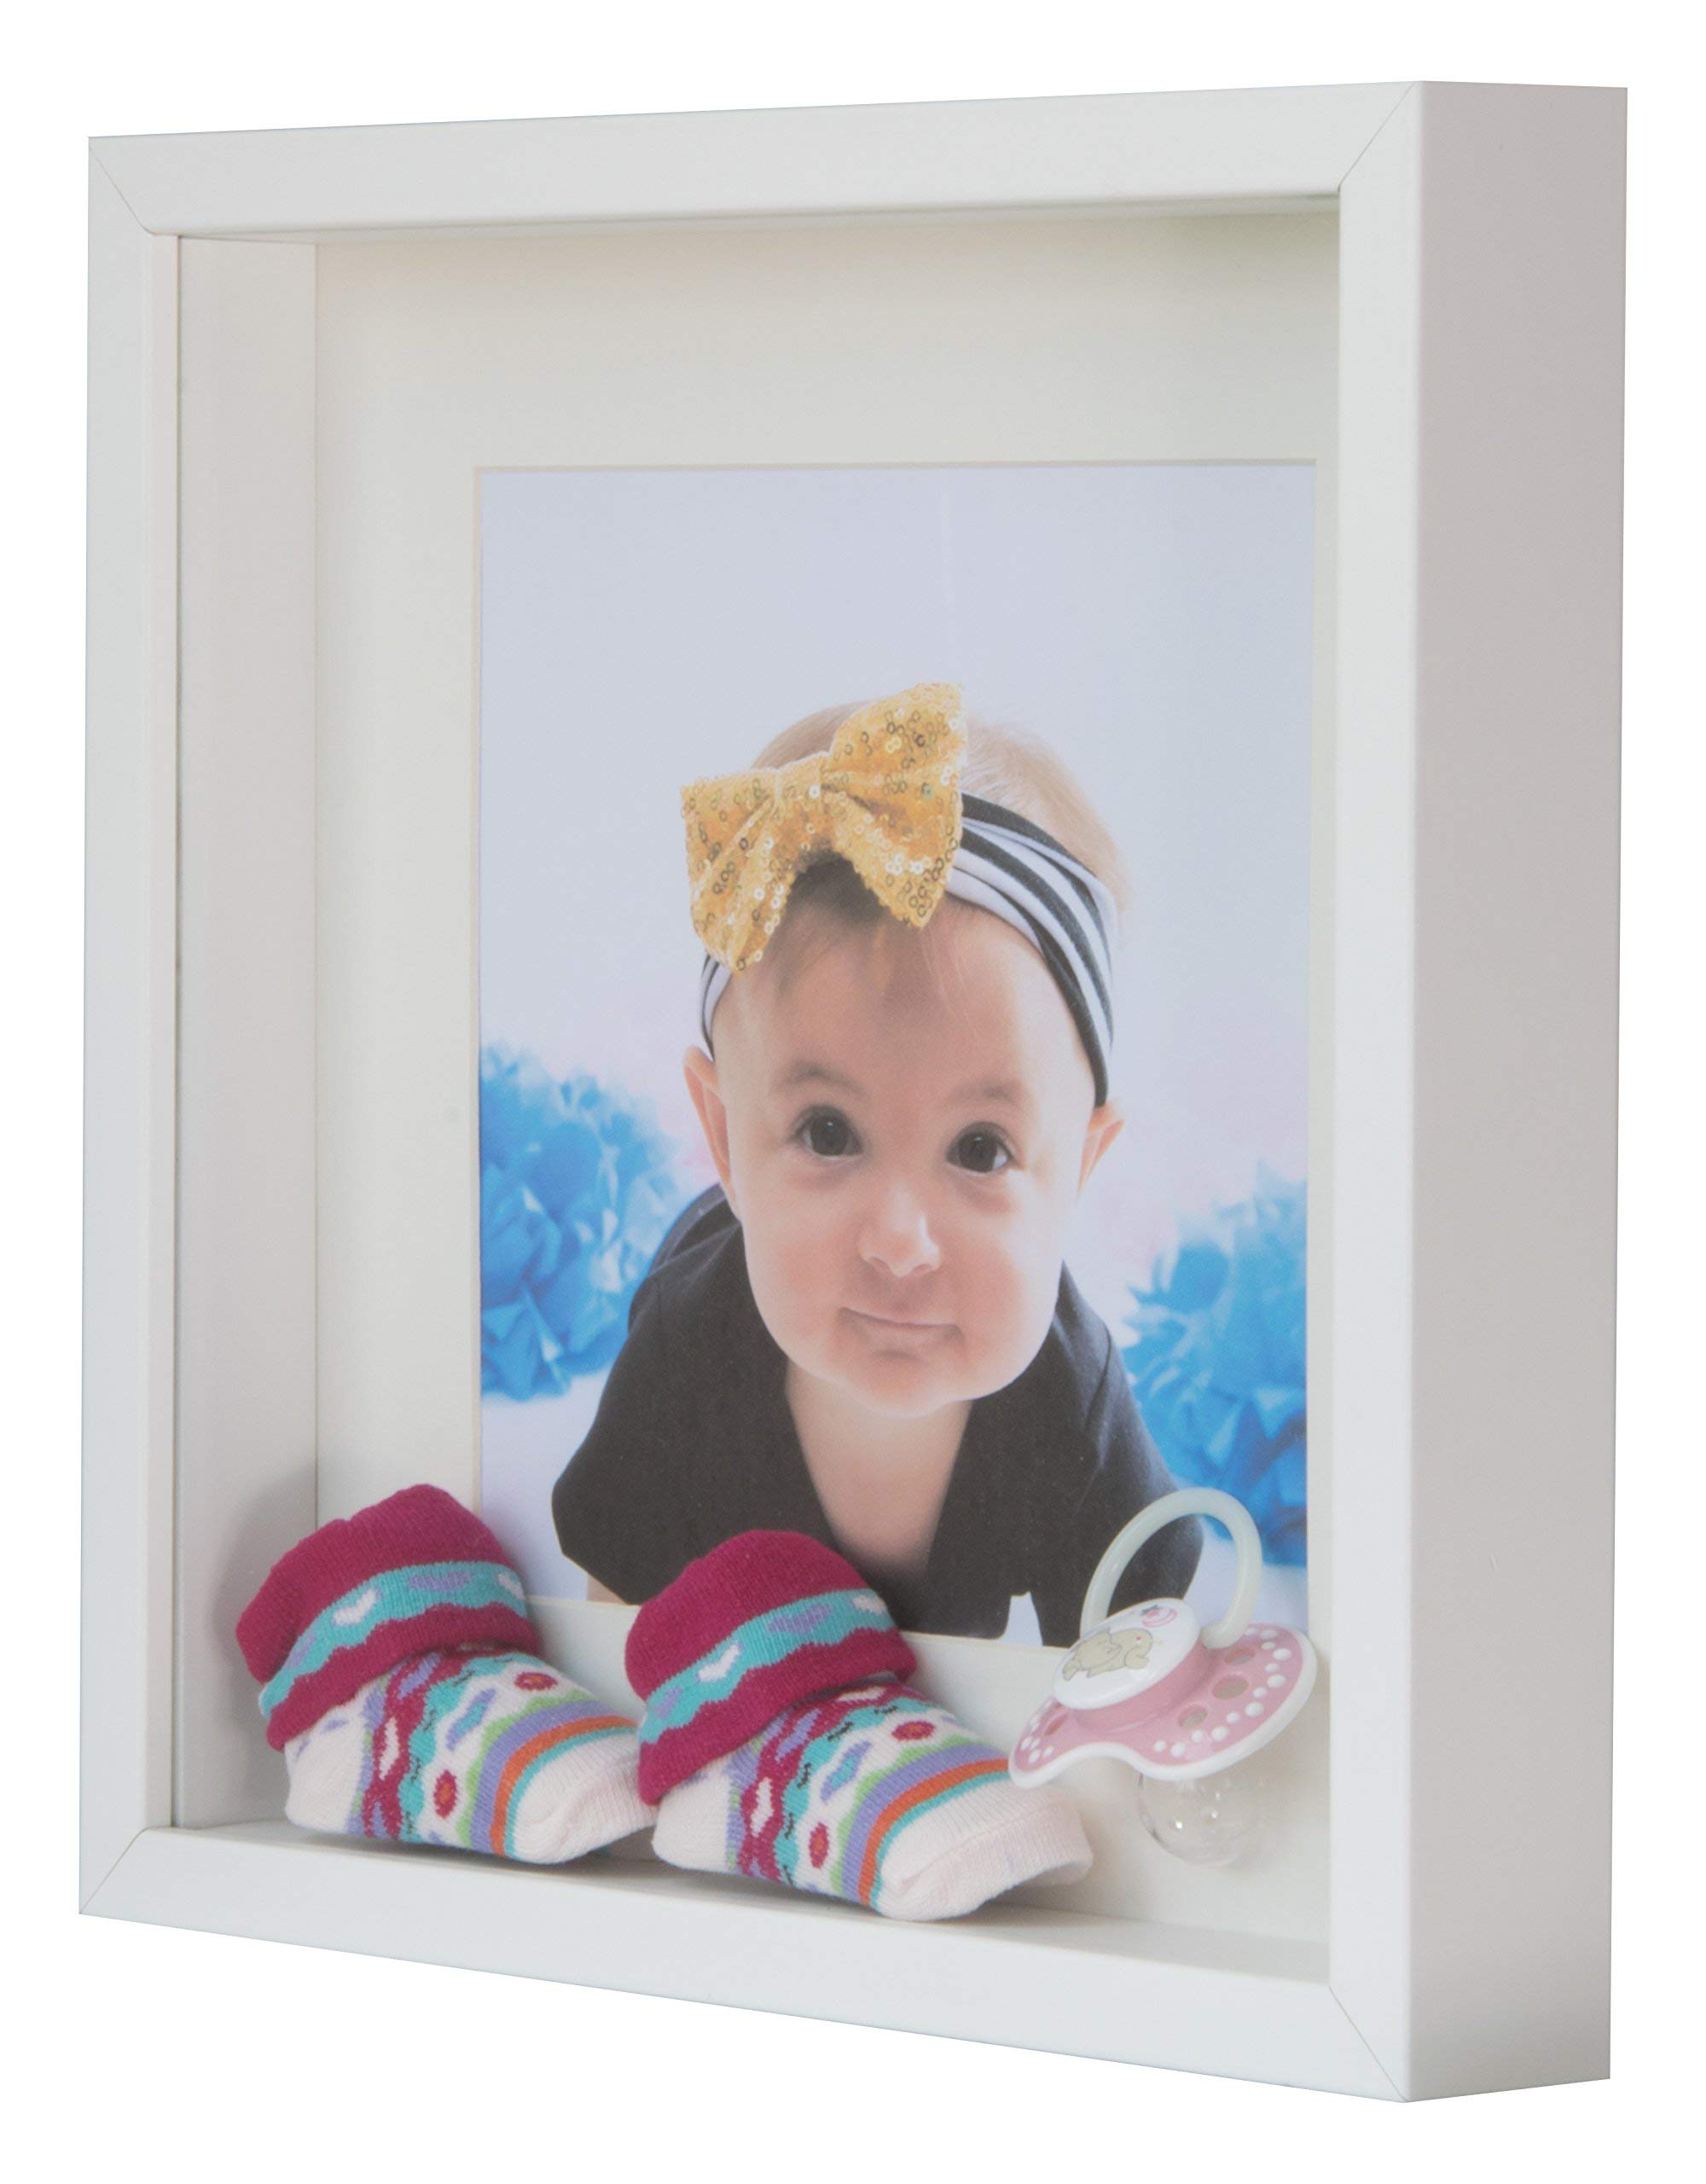 BD ART 11x11 (28 x 28 x 4.7 cm) White Shadow Box 3D Square Picture Frame with Mat for 8x8 inch Photo, Glass Front by BD ART